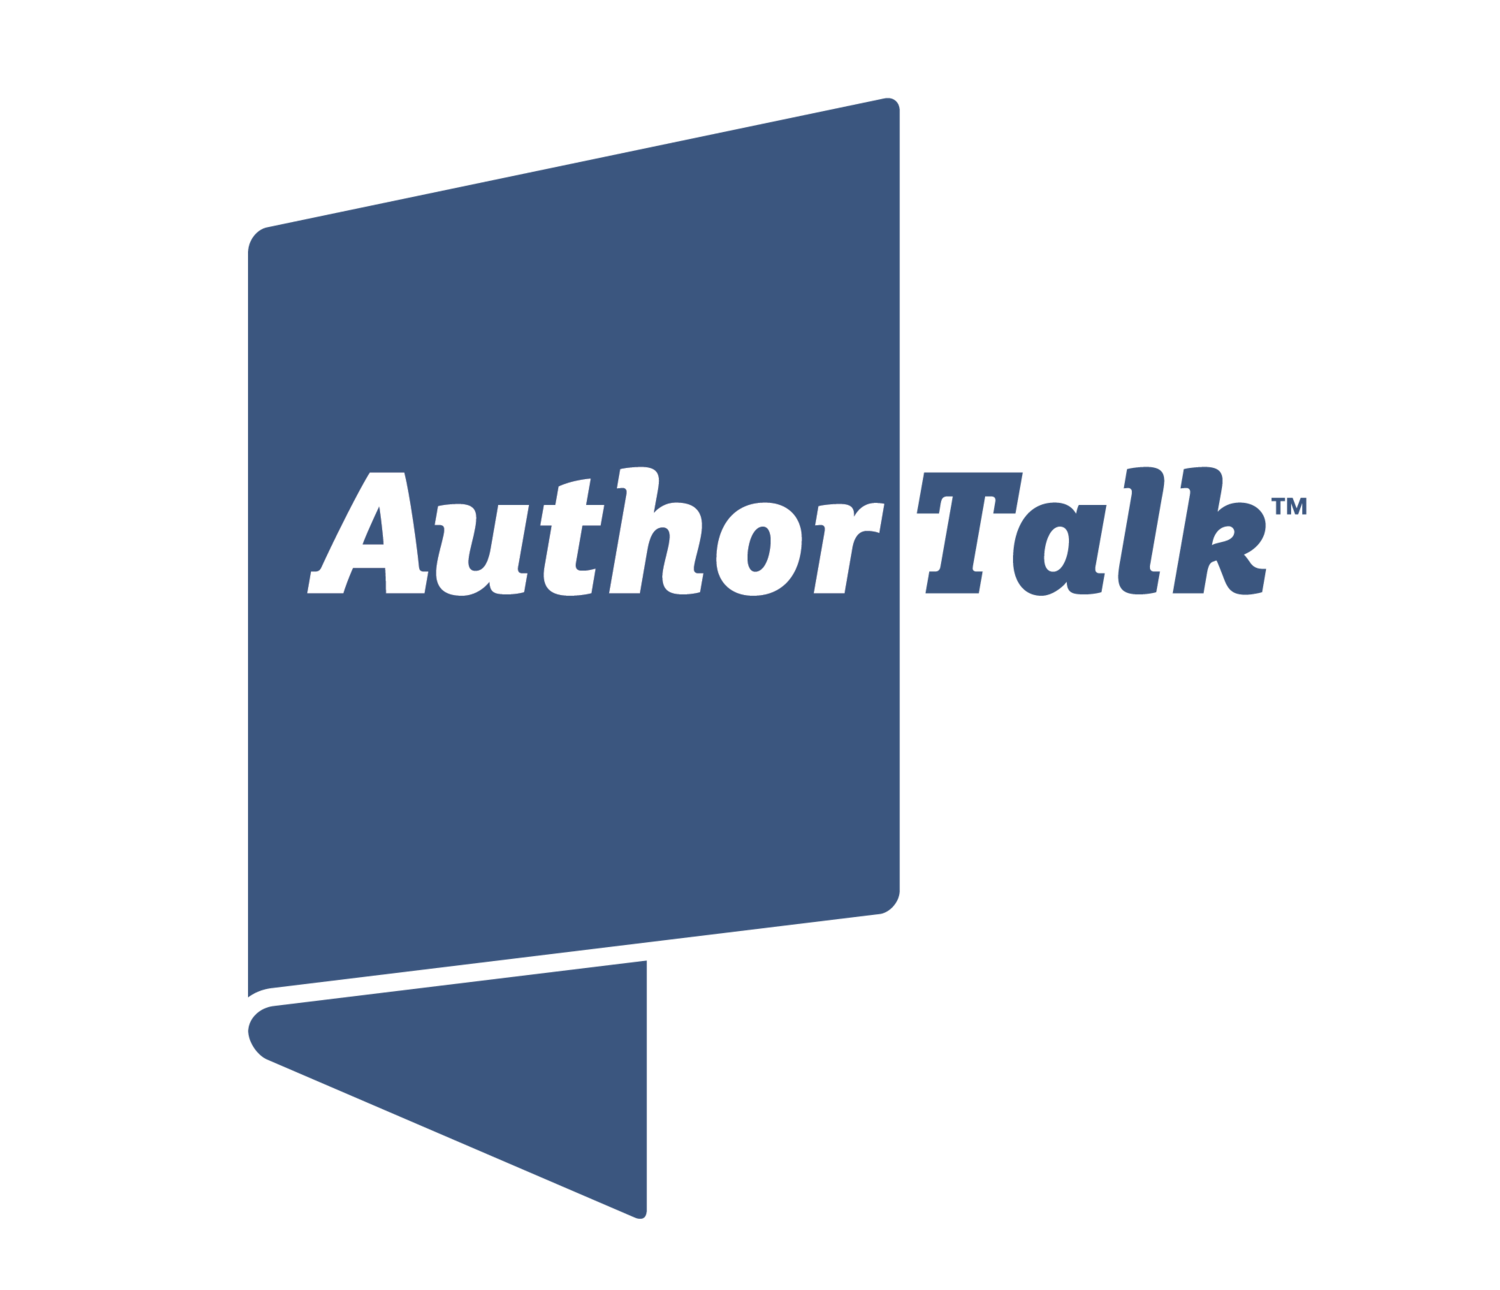 AuthorTalk